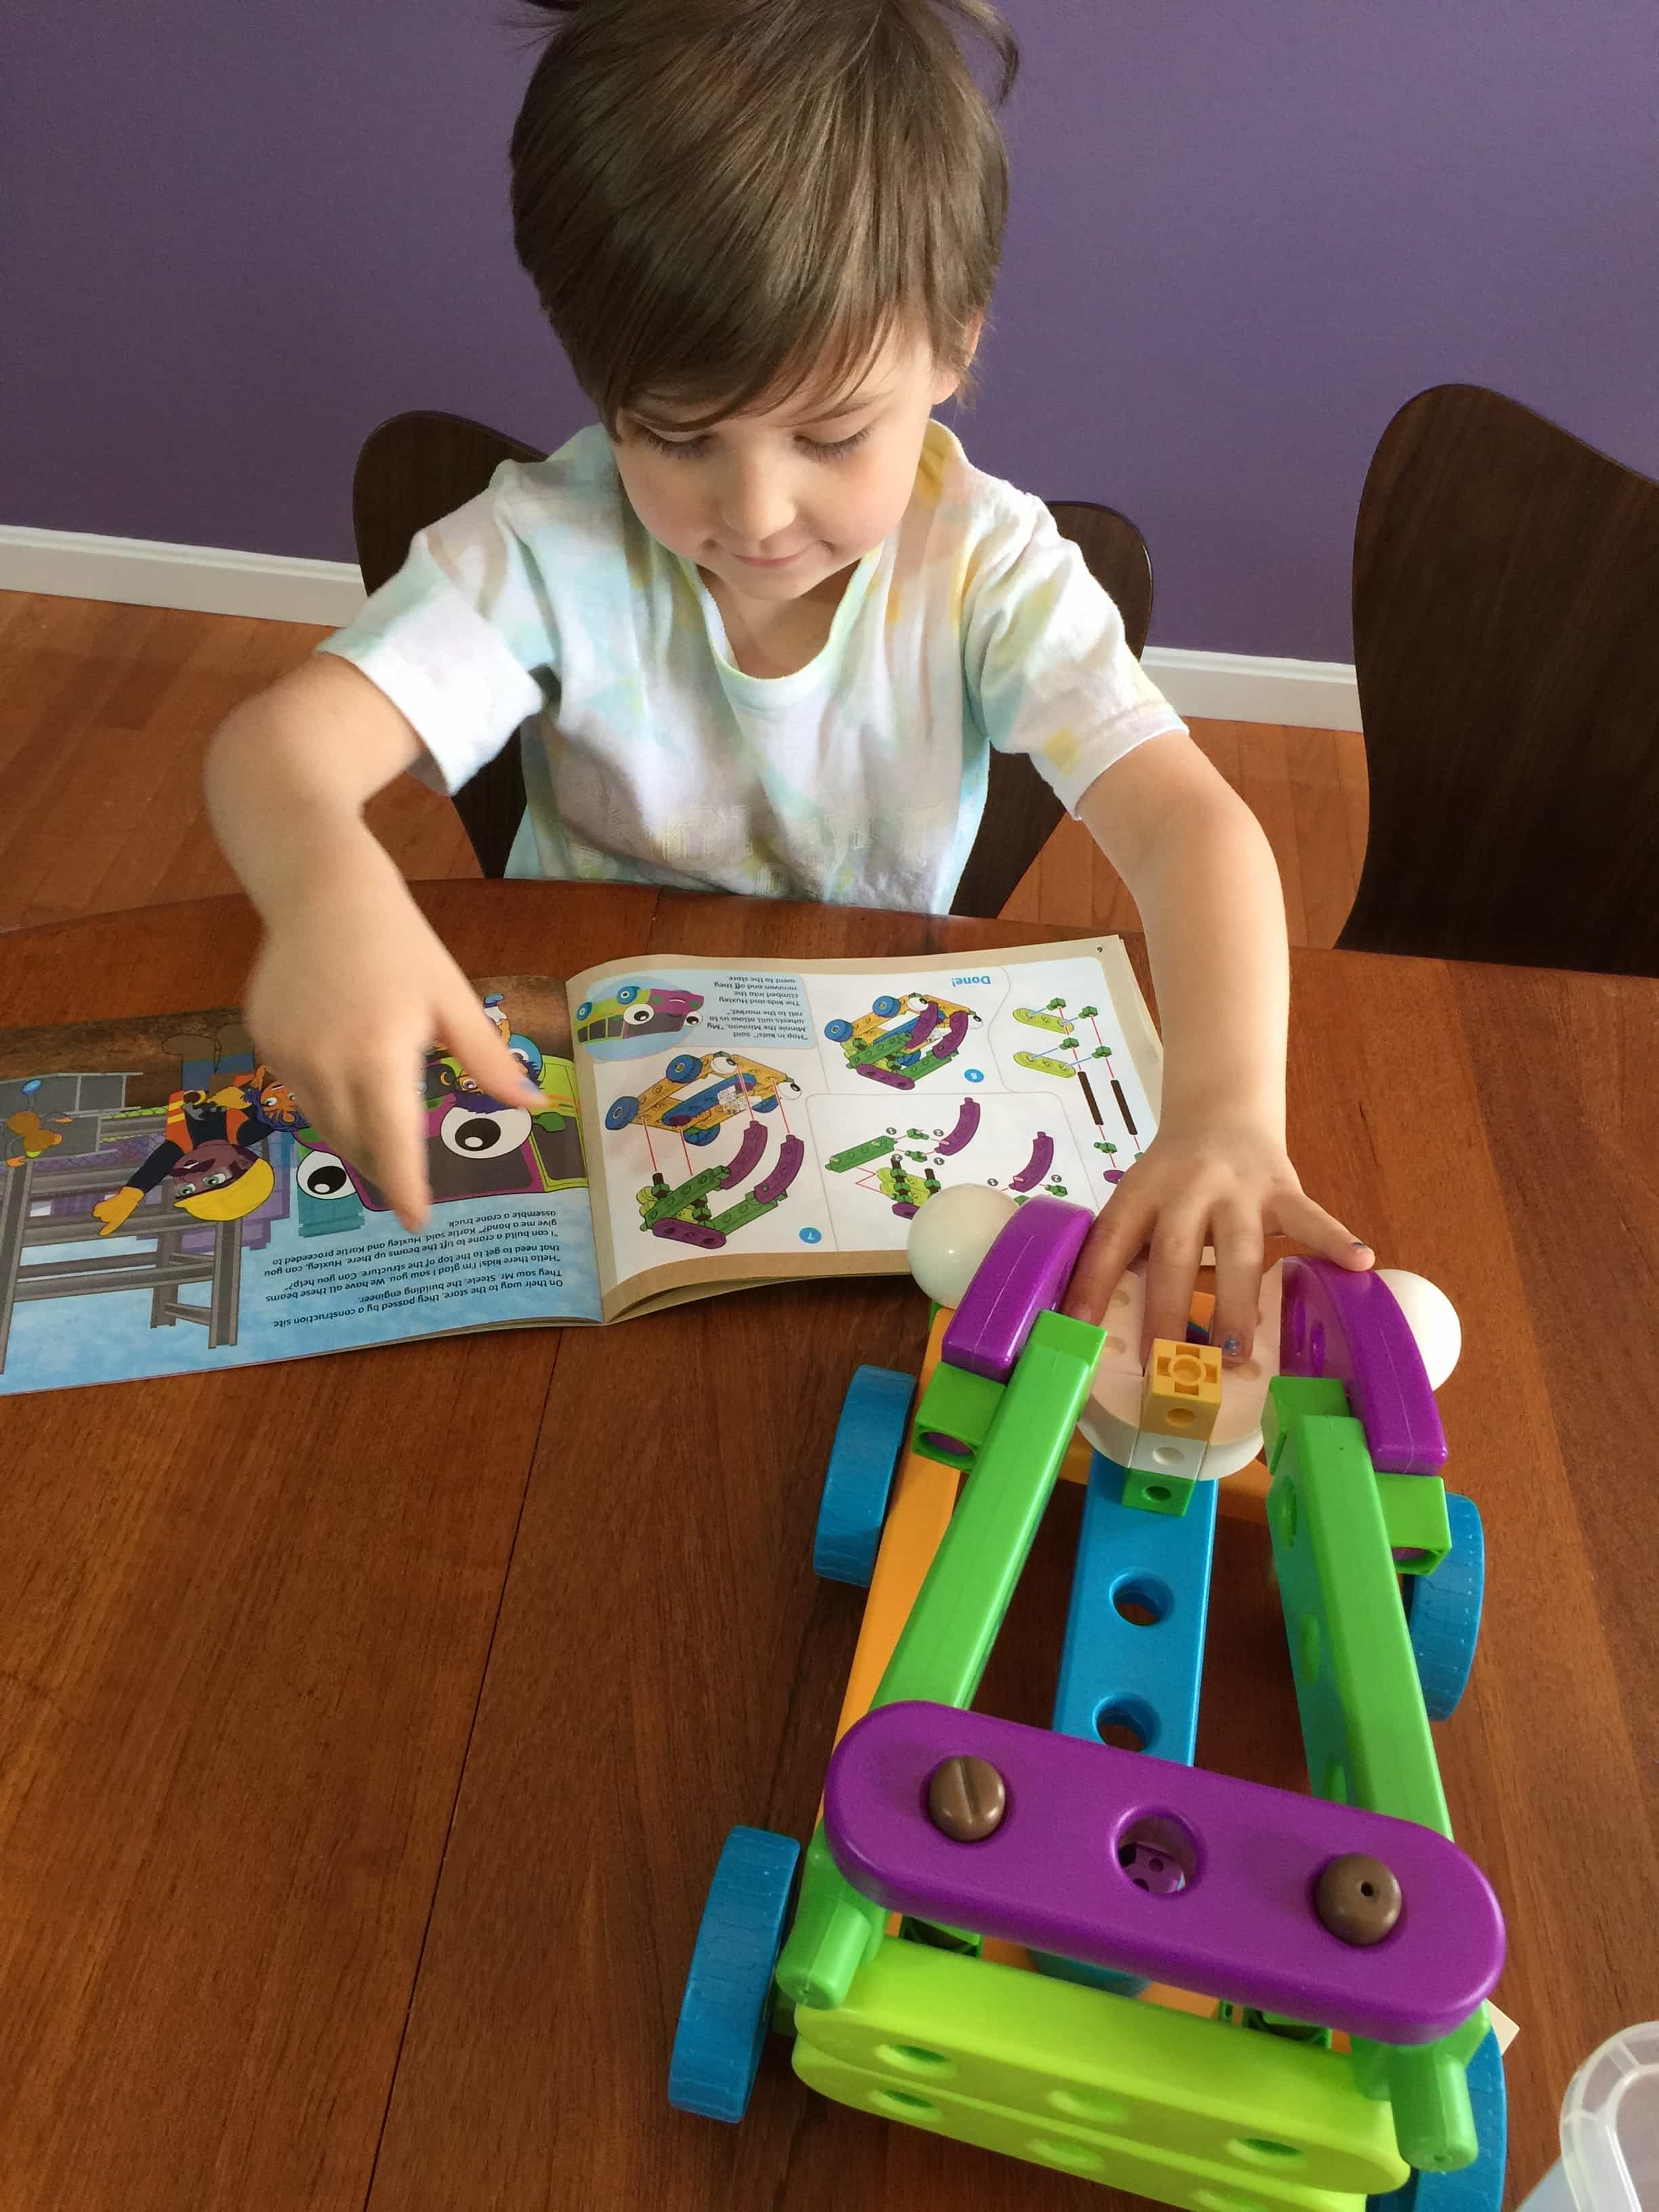 The Best Of Stem toys for 6 Year Old Pics